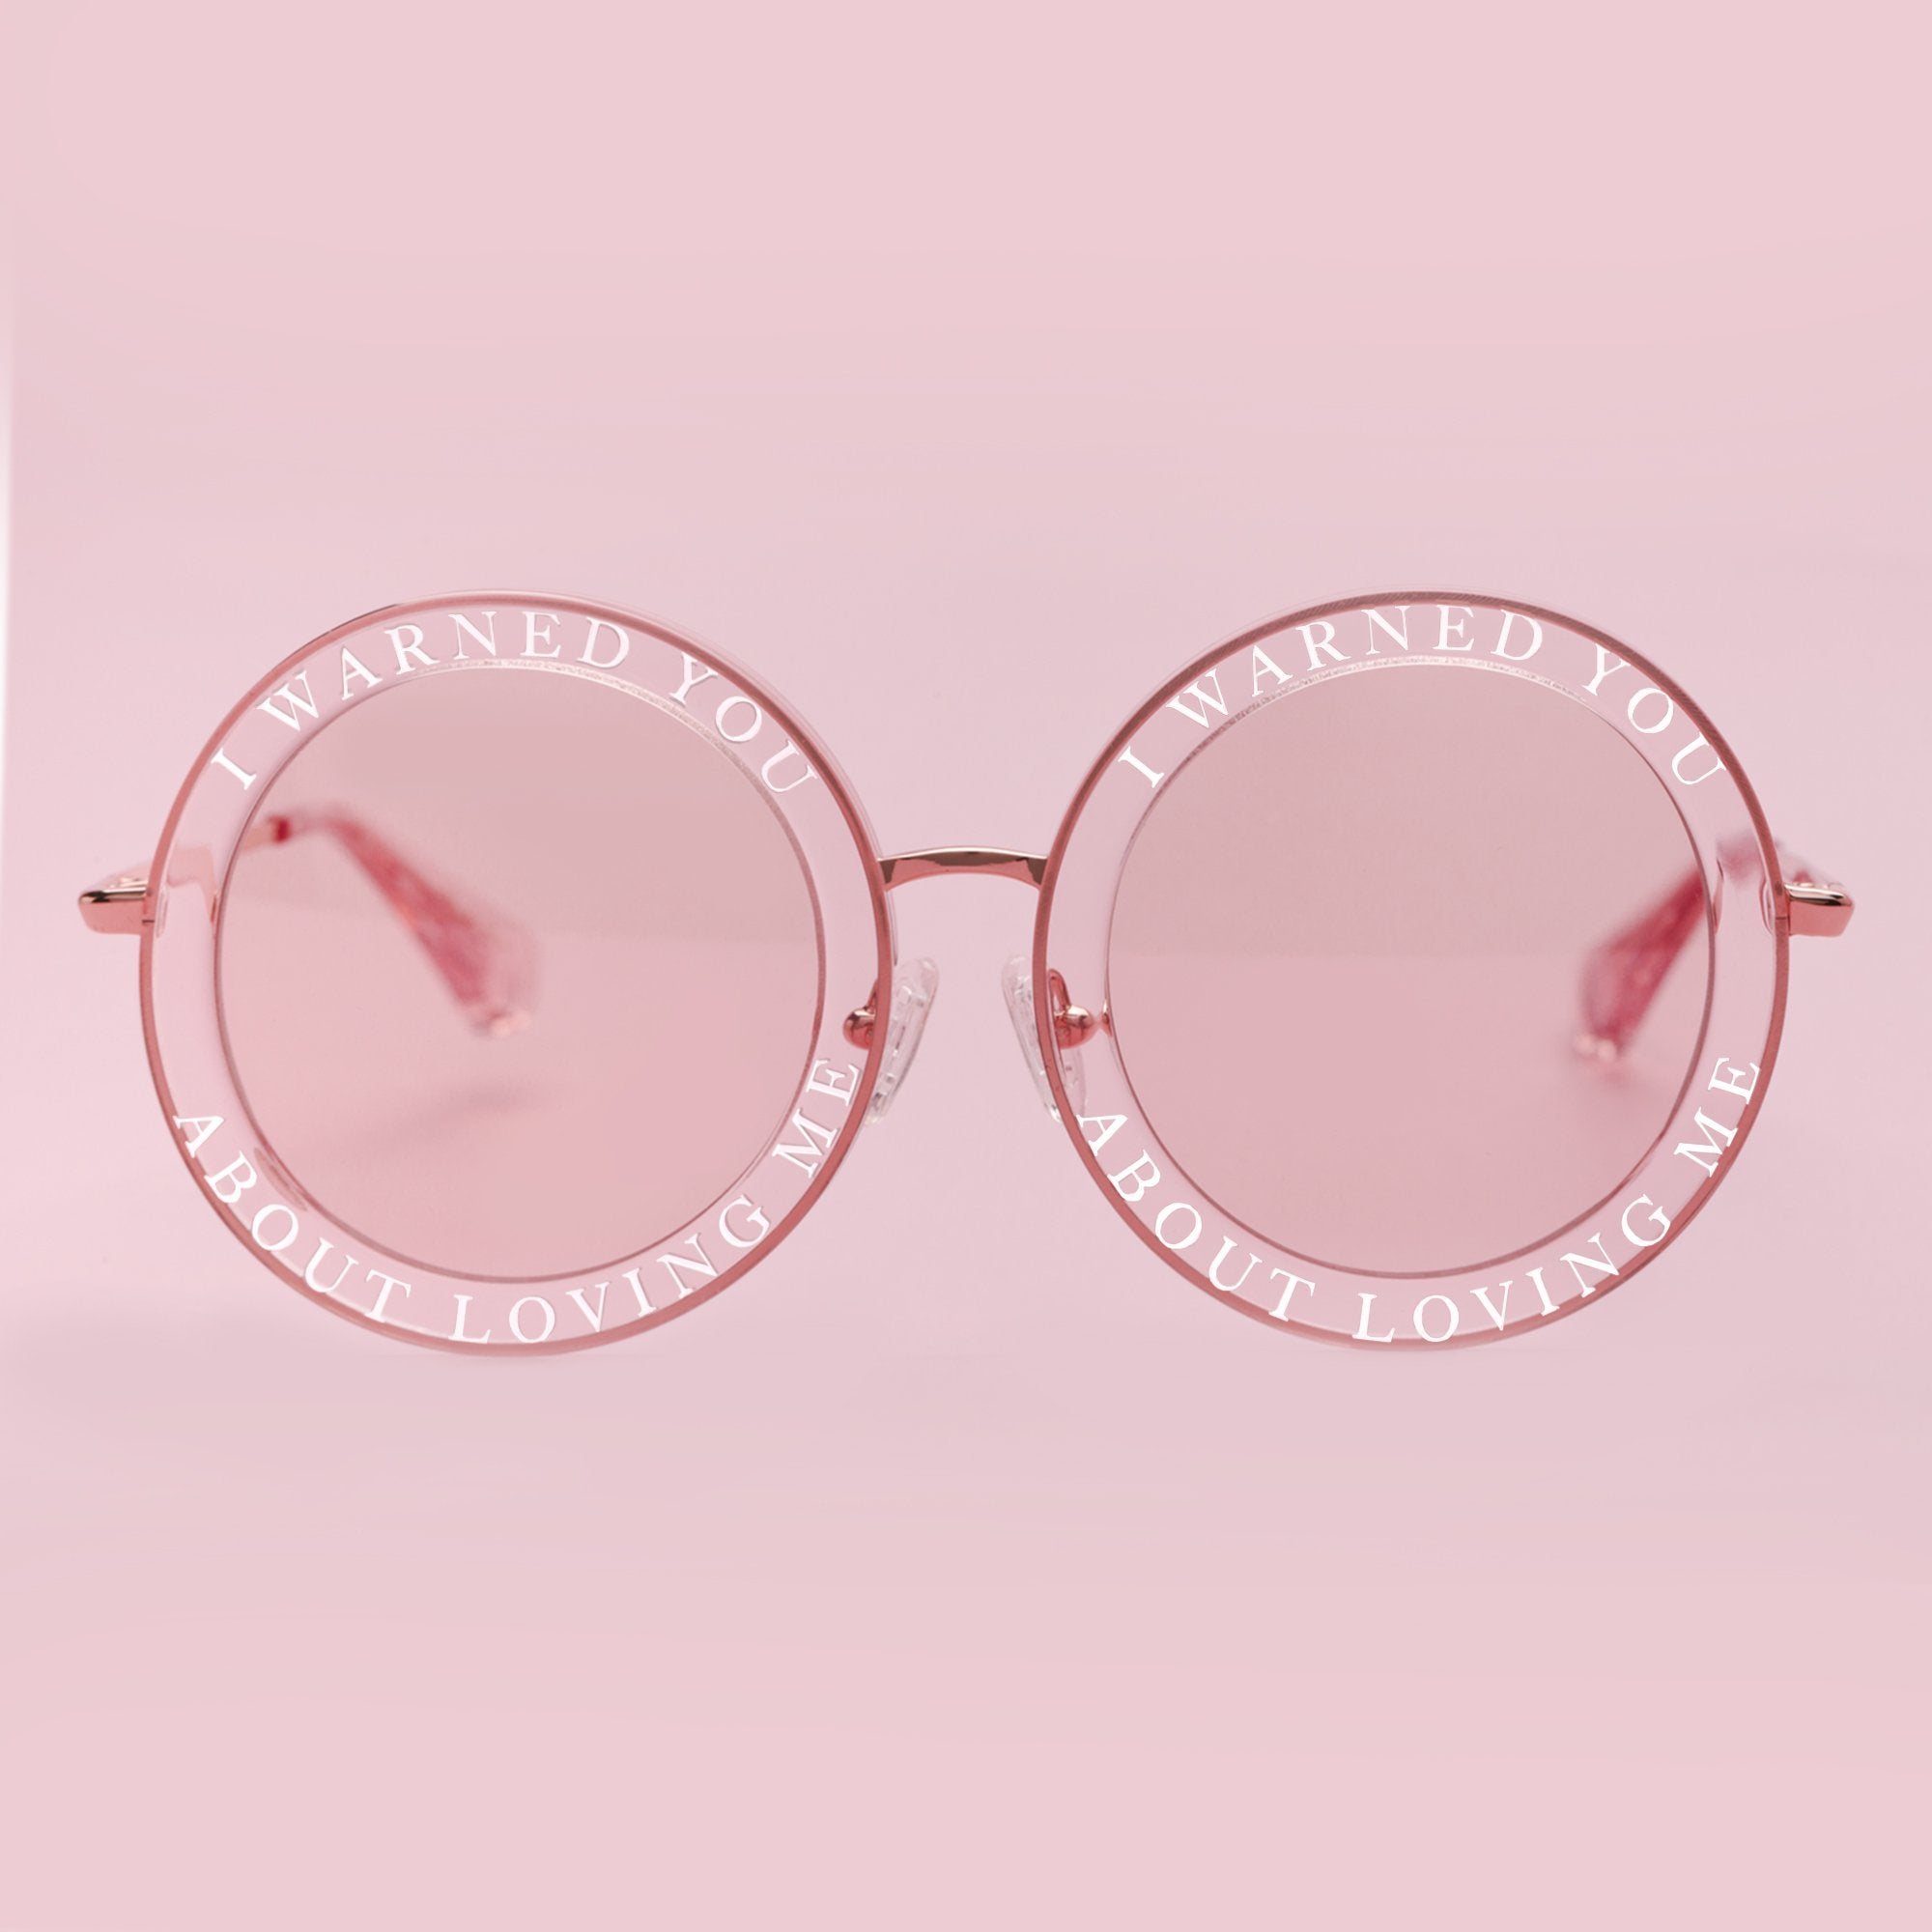 Reve by Rene Honey Trap sunglasses in Pink